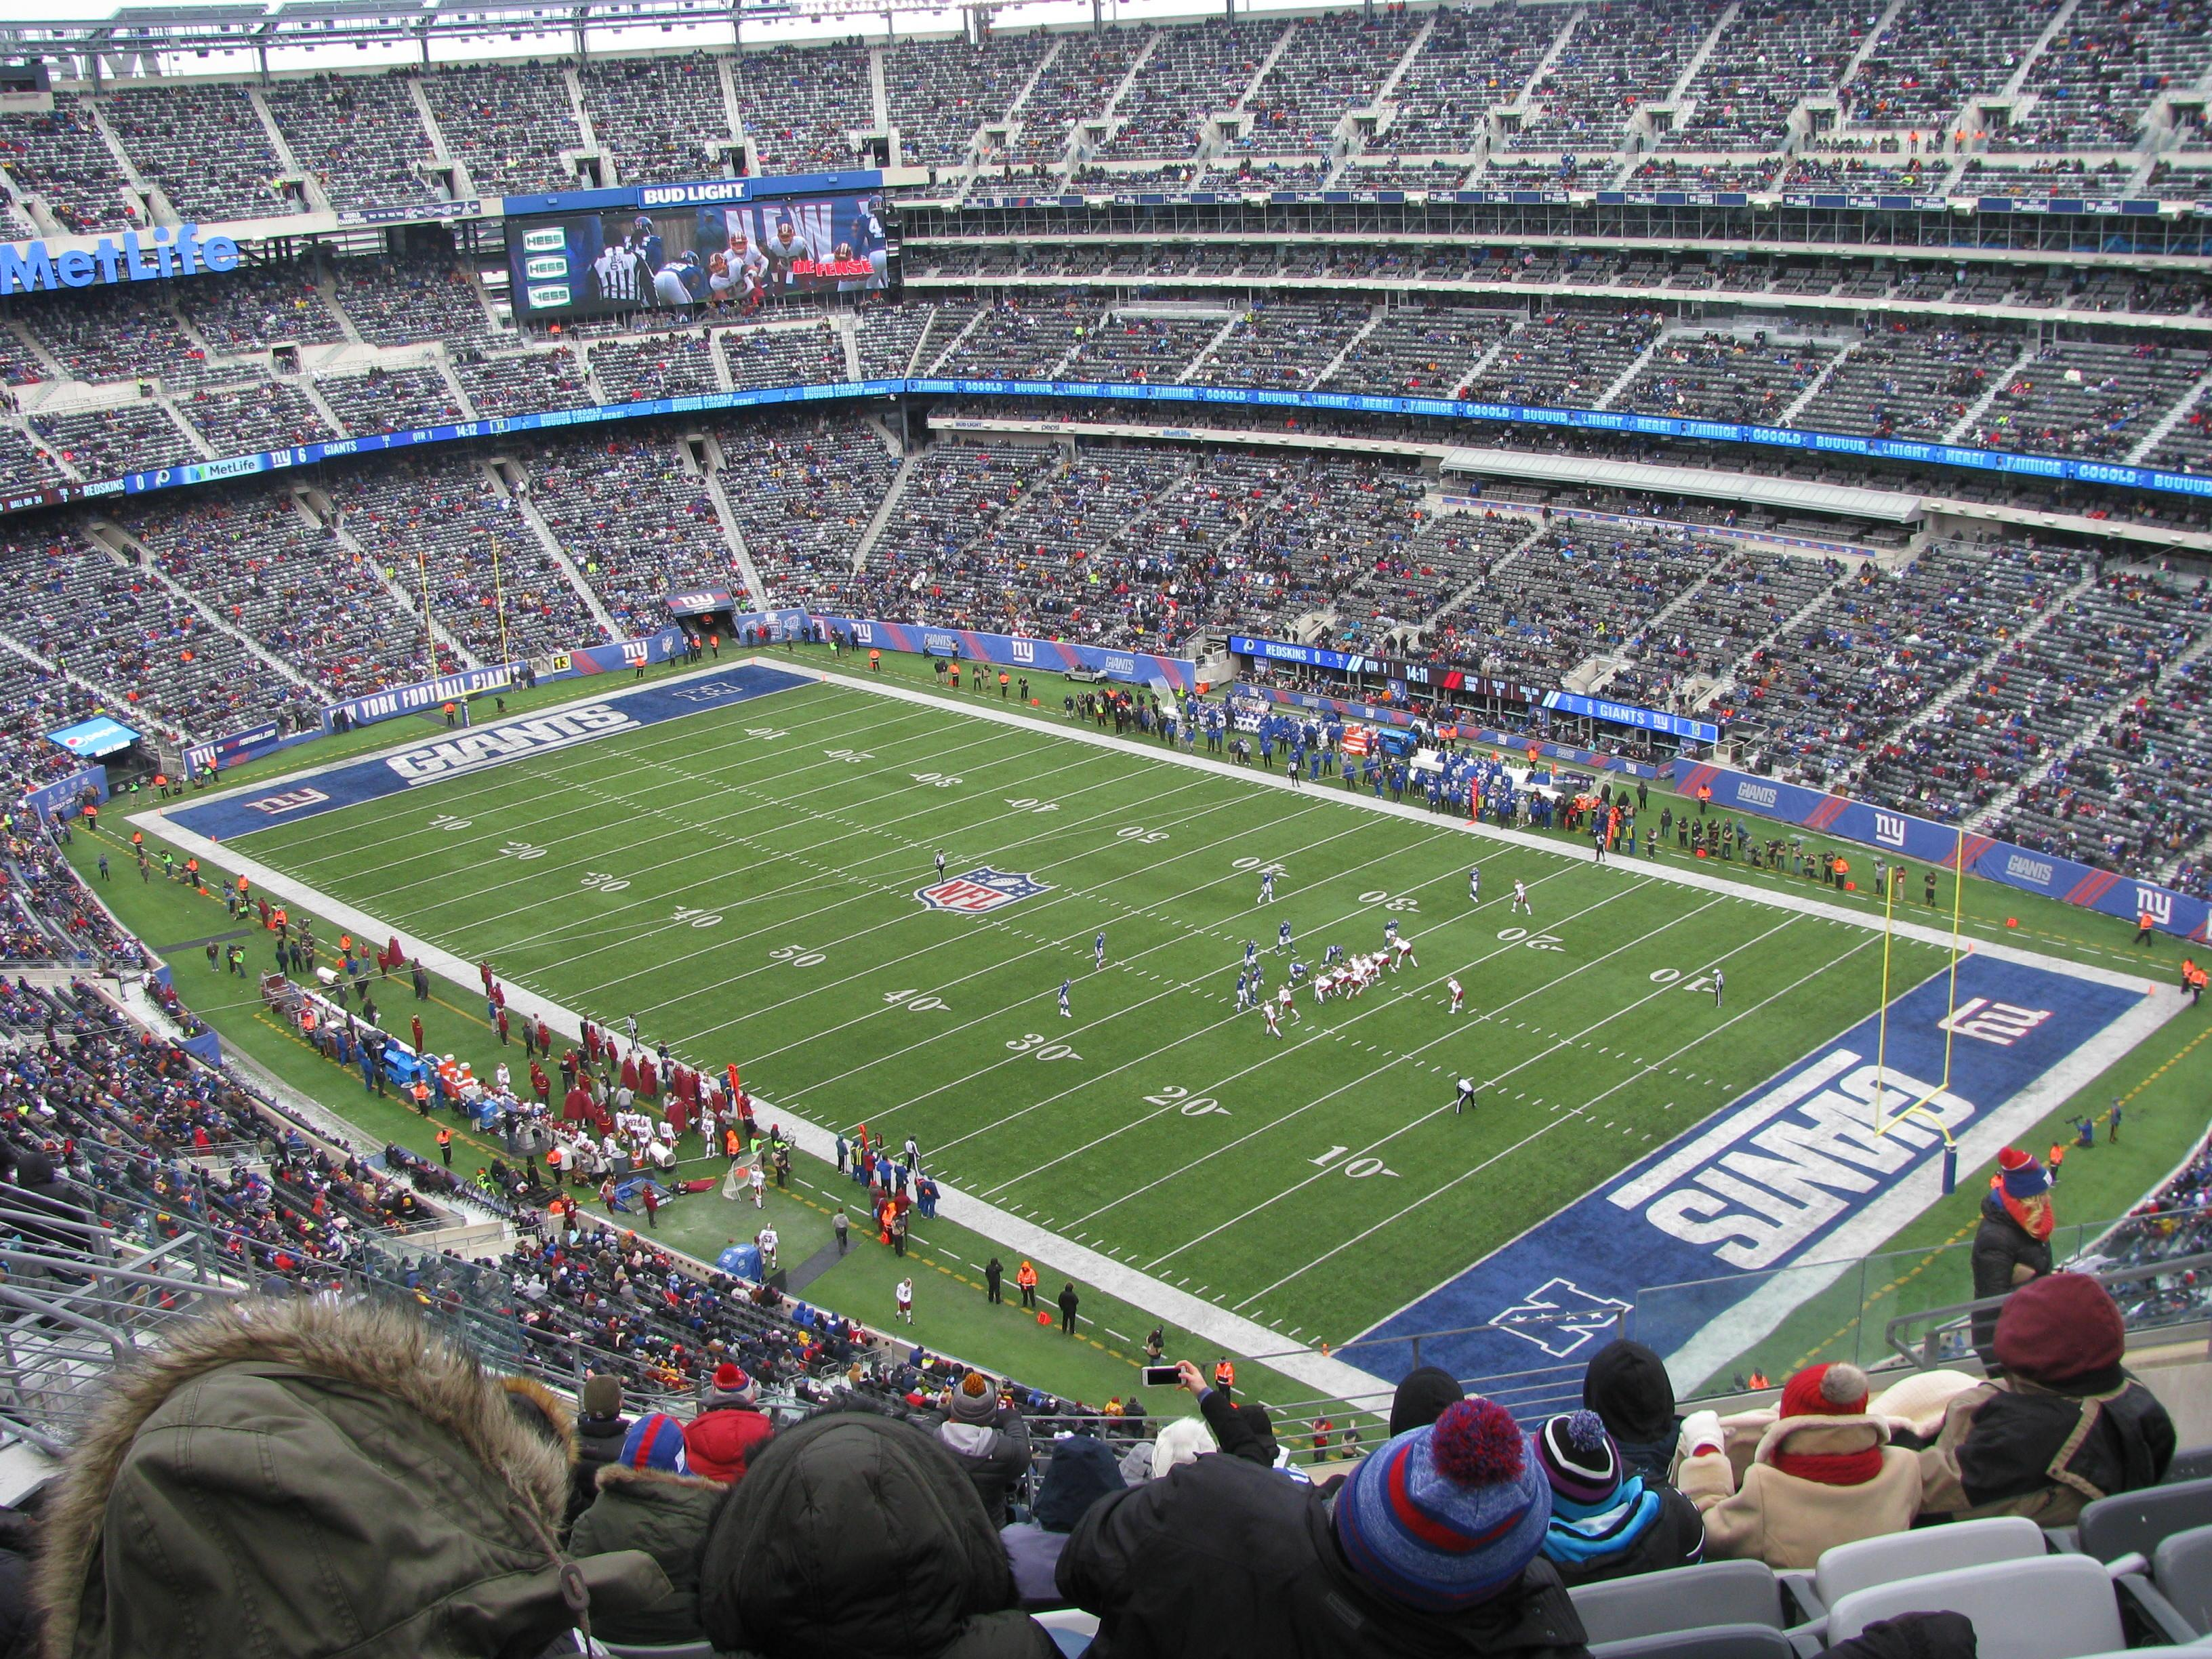 MetLife Stadium Section 332 Row 15 Seat 10